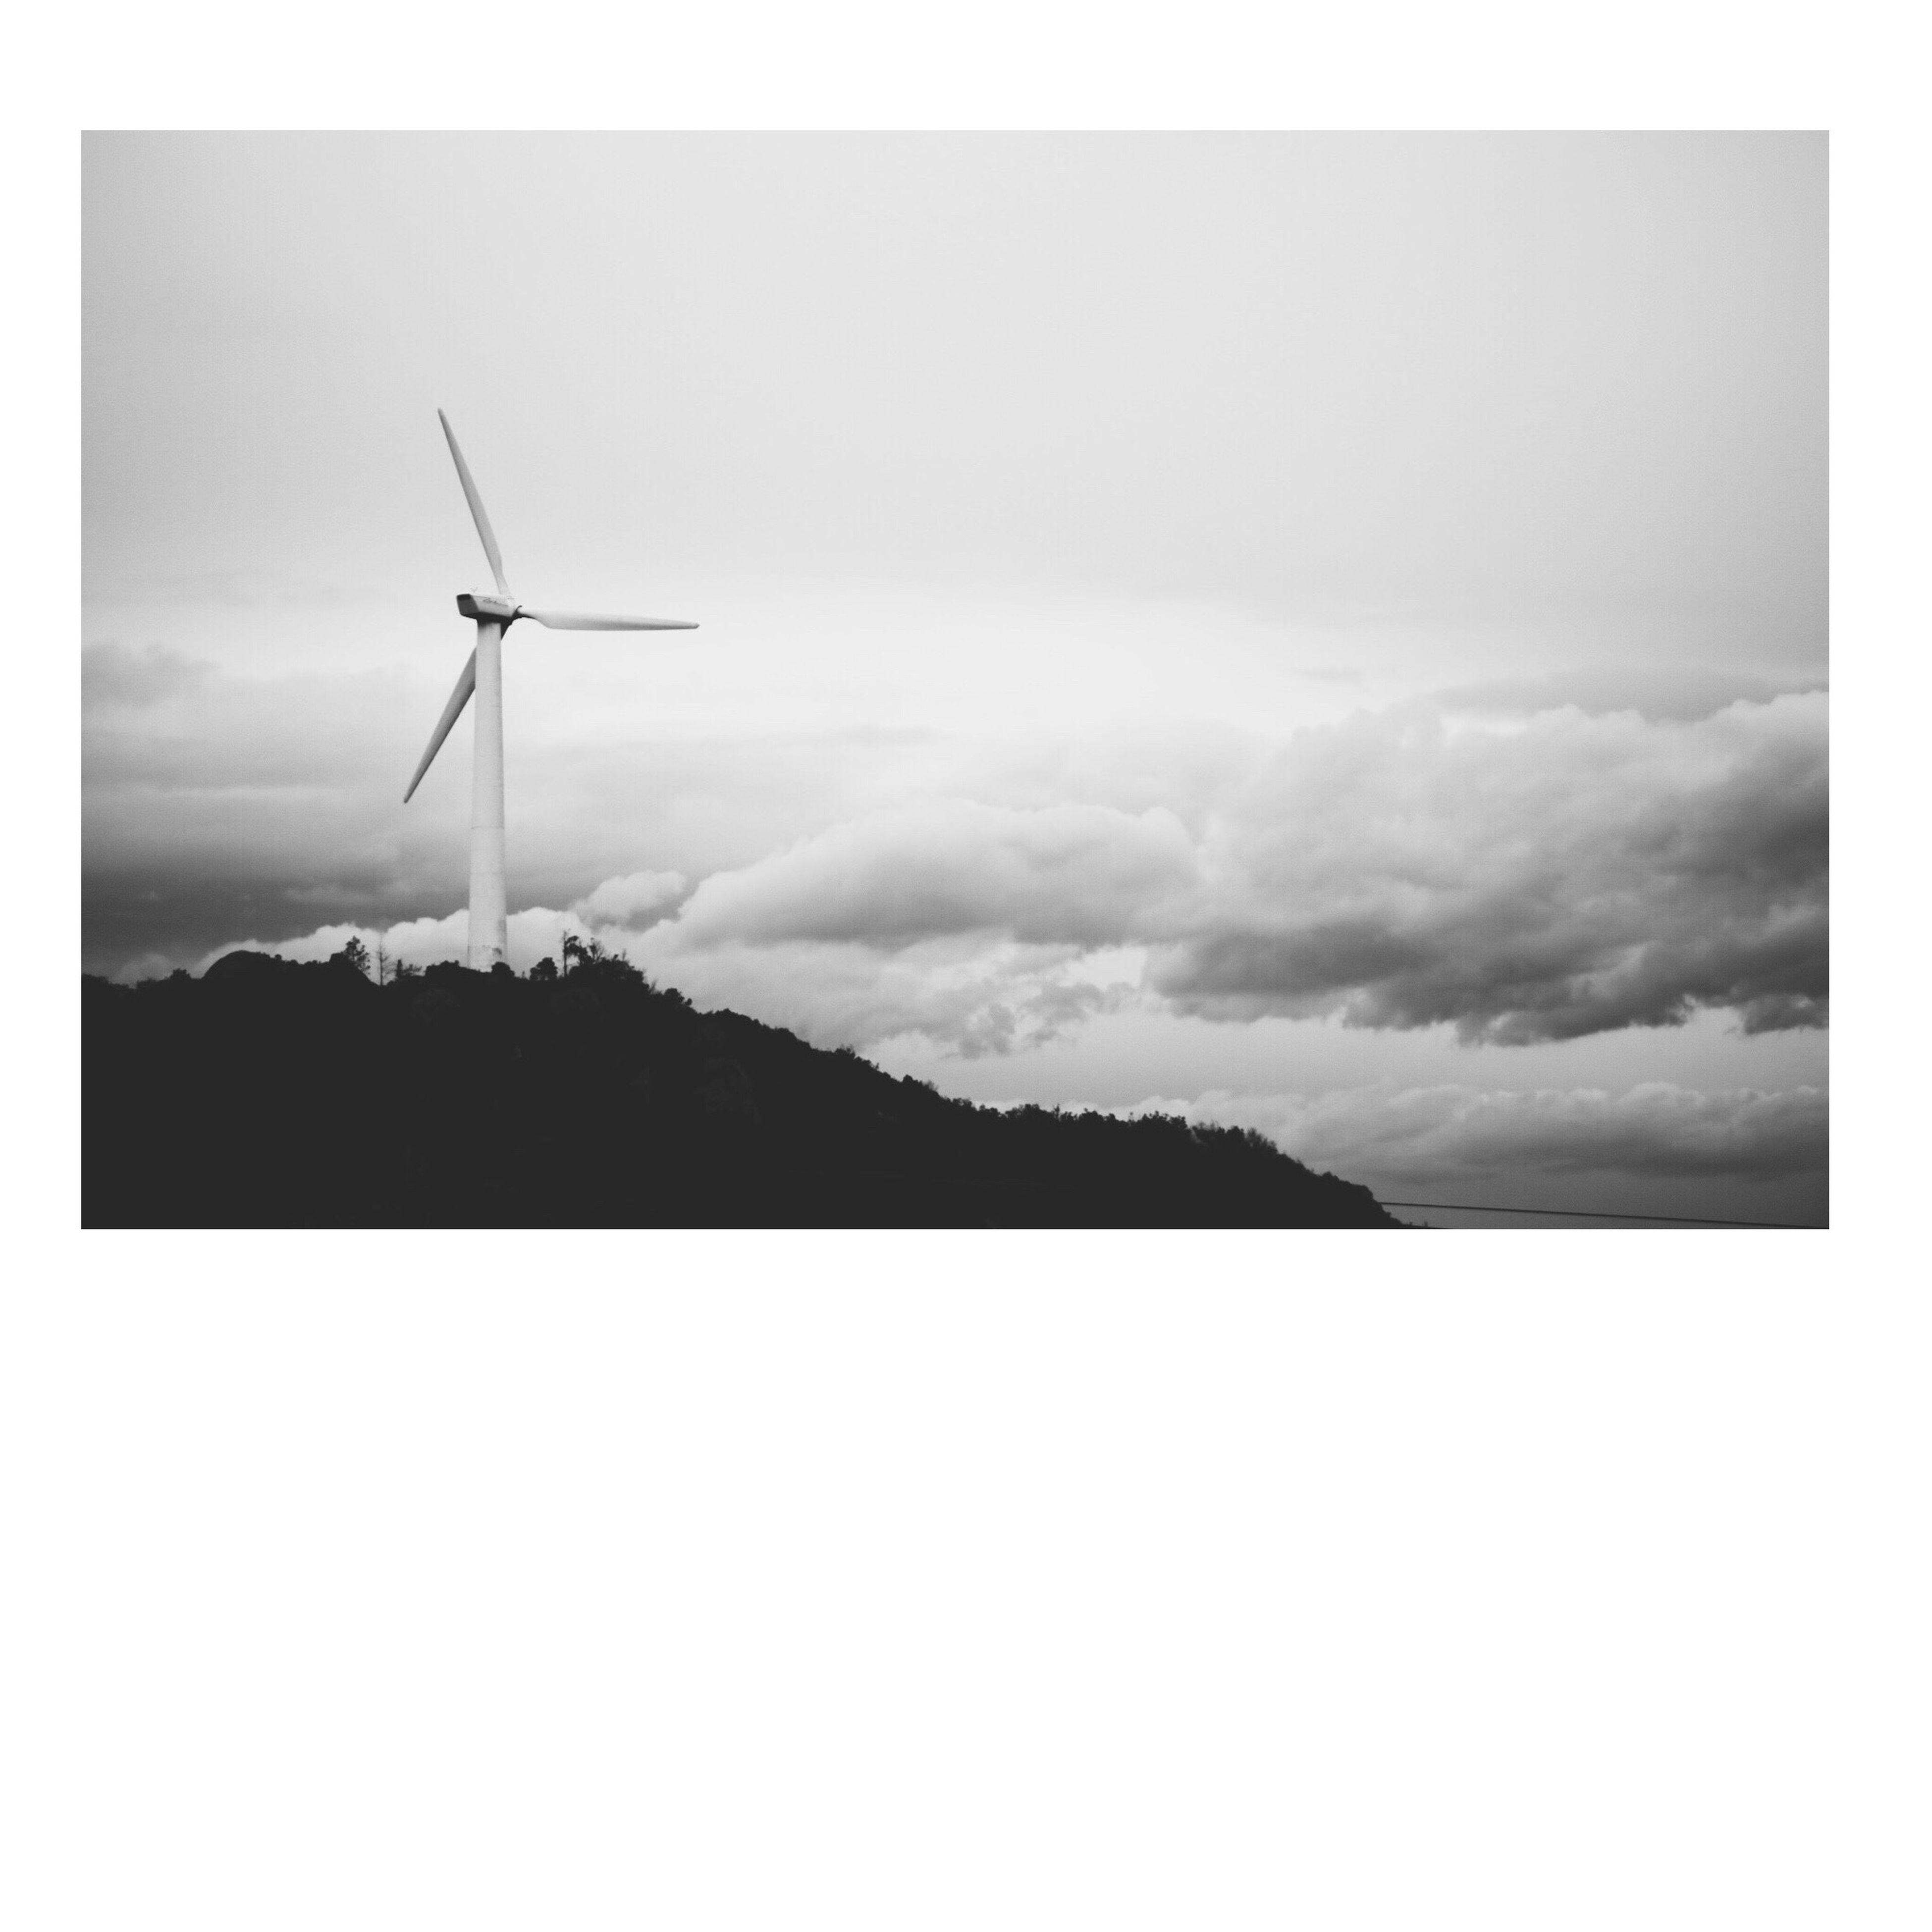 wind turbine, wind power, alternative energy, windmill, renewable energy, environmental conservation, fuel and power generation, sky, landscape, traditional windmill, rural scene, cloud - sky, nature, outdoors, tranquil scene, day, no people, tranquility, scenics, cloud, beauty in nature, weather, non-urban scene